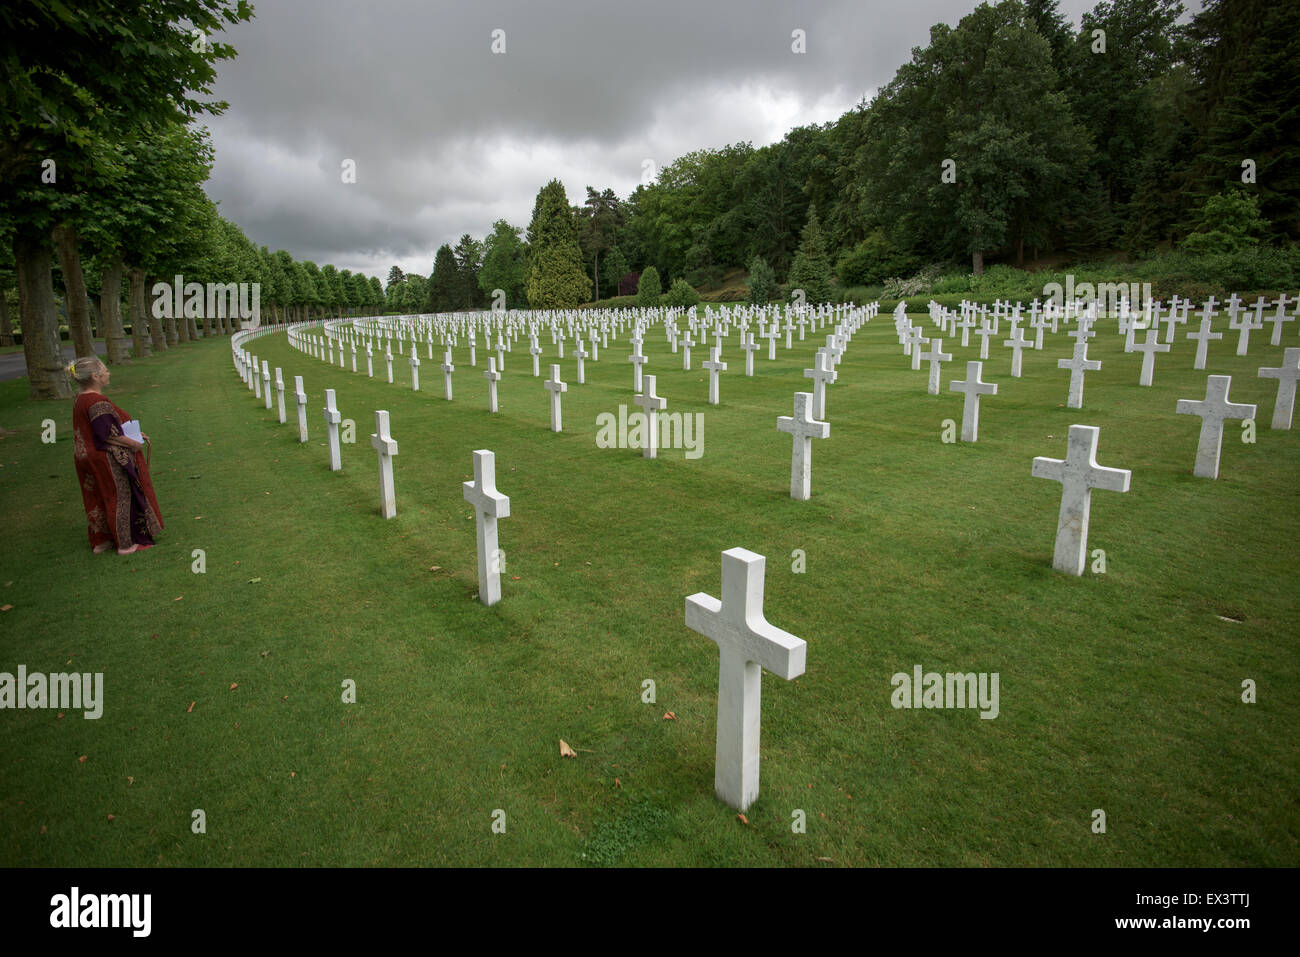 Aisne-Marne American Cemetery and Memorial, a WWI cemetery in Belleau, France. June 2015 - Stock Image